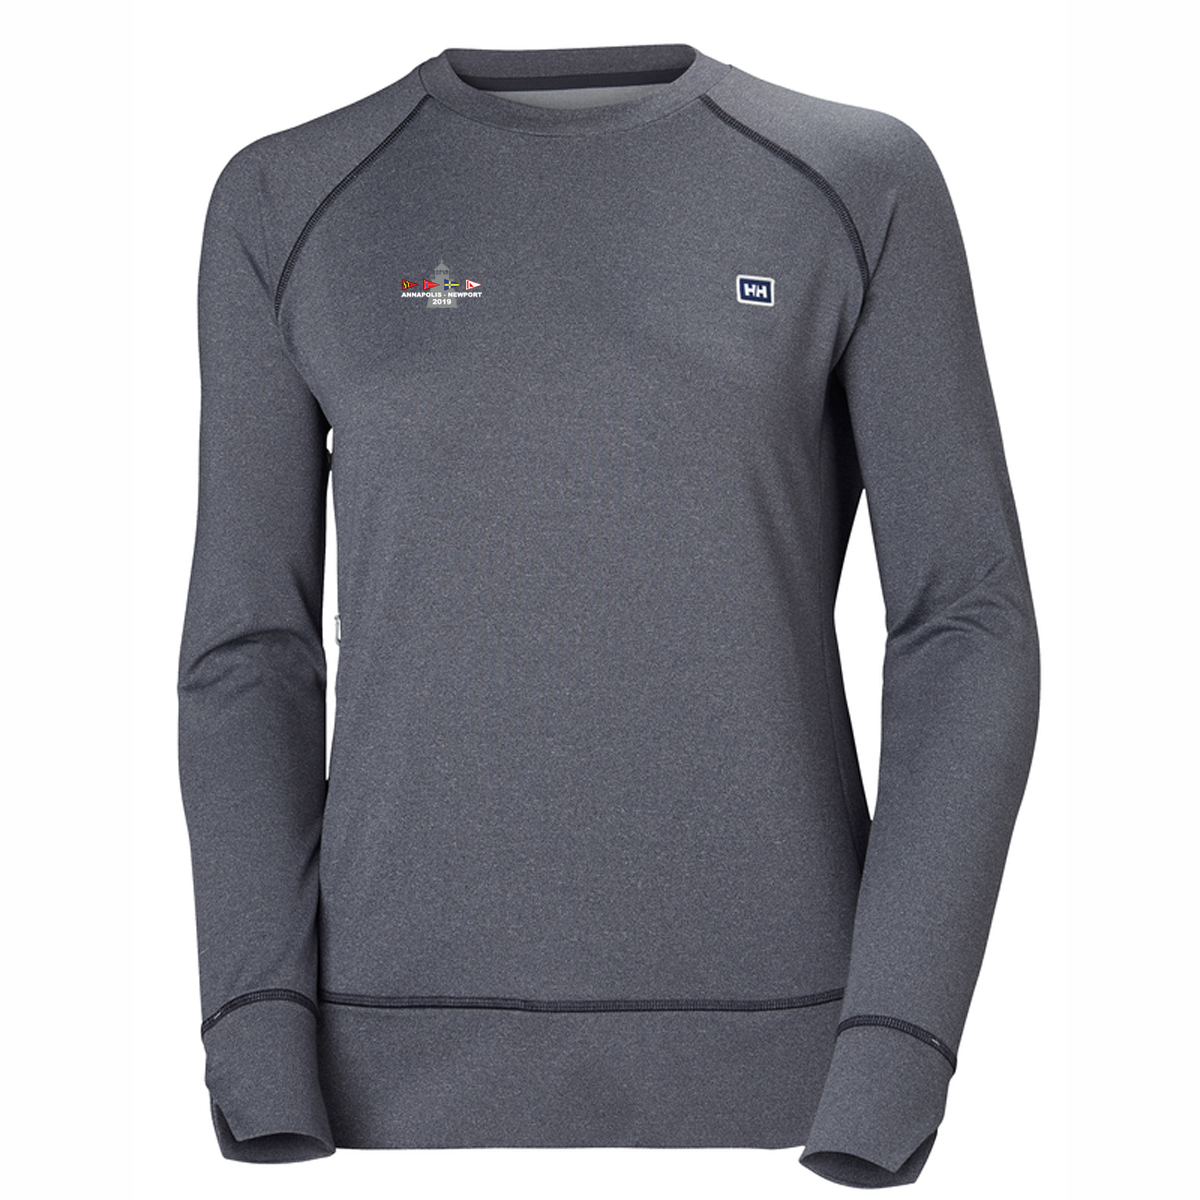 A2N19- HELLY HANSEN WOMEN'S HYGGEN LONG SLEEVE